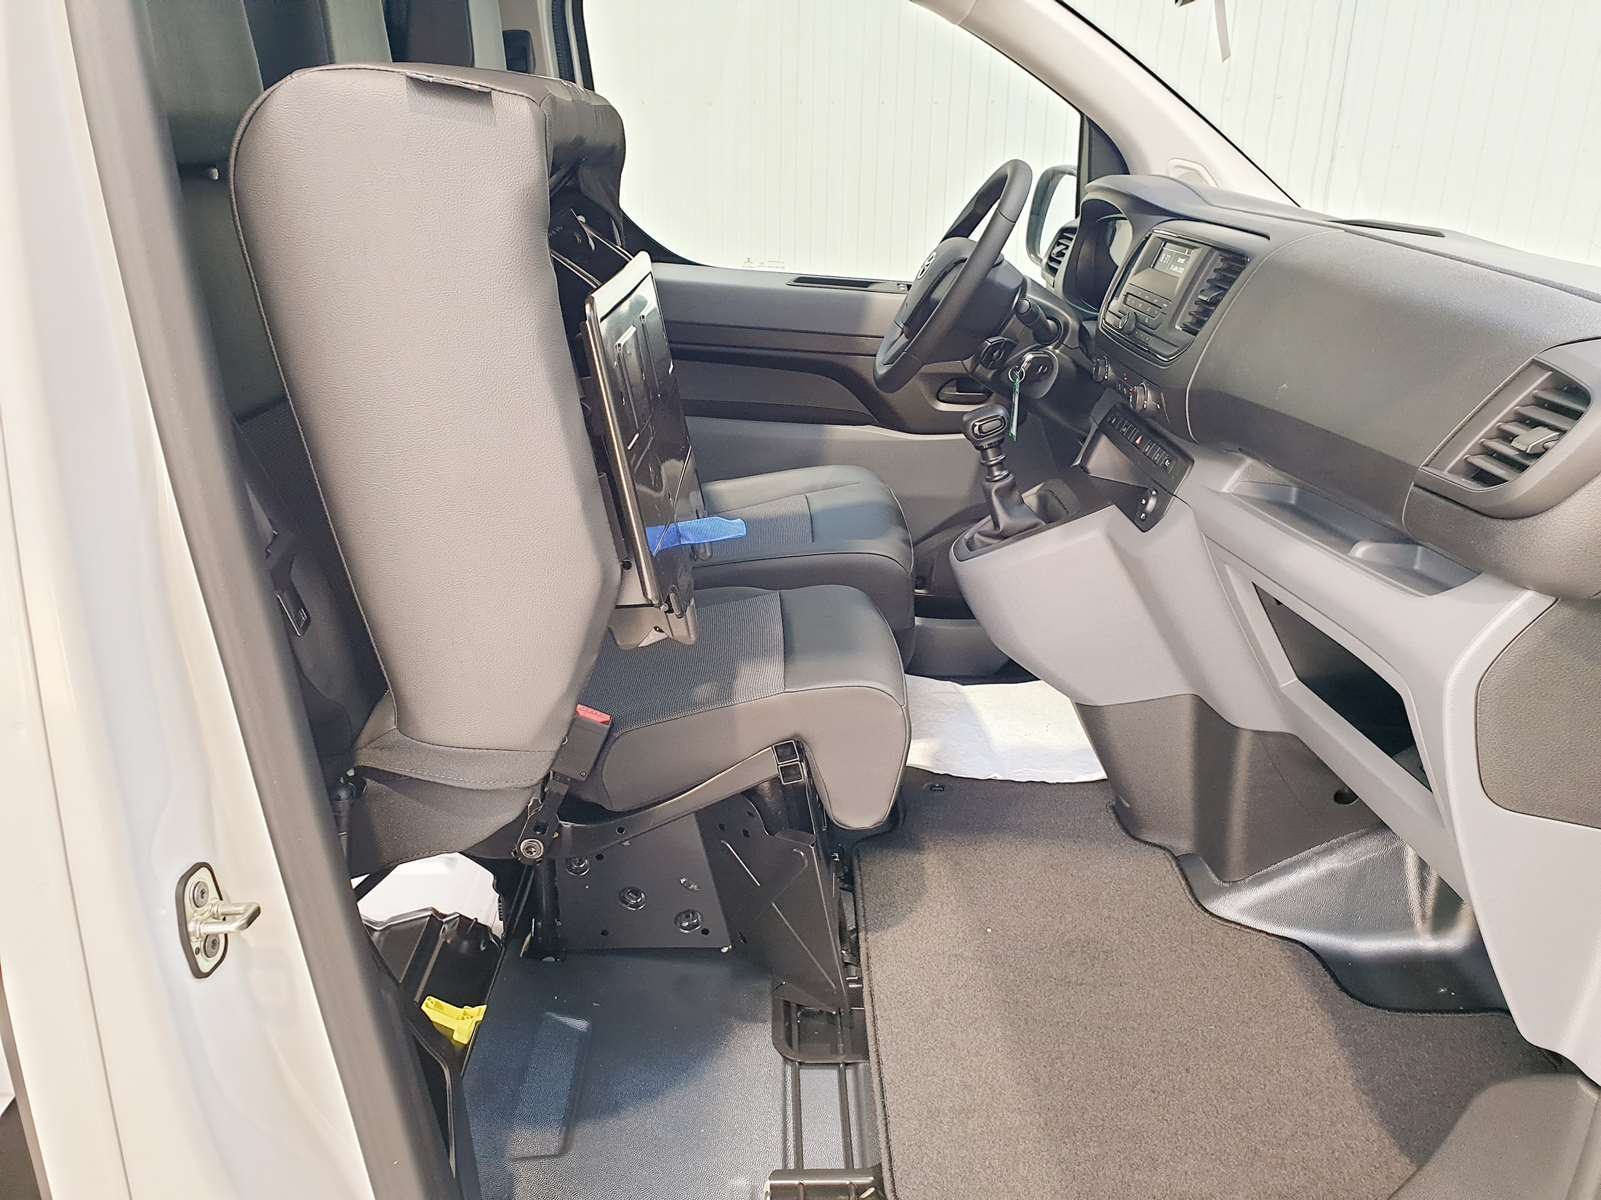 Miniature TOYOTA PROACE FOURGON MY20 COMPACT 1.5L 120 D-4D BVM6 DYNAMIC